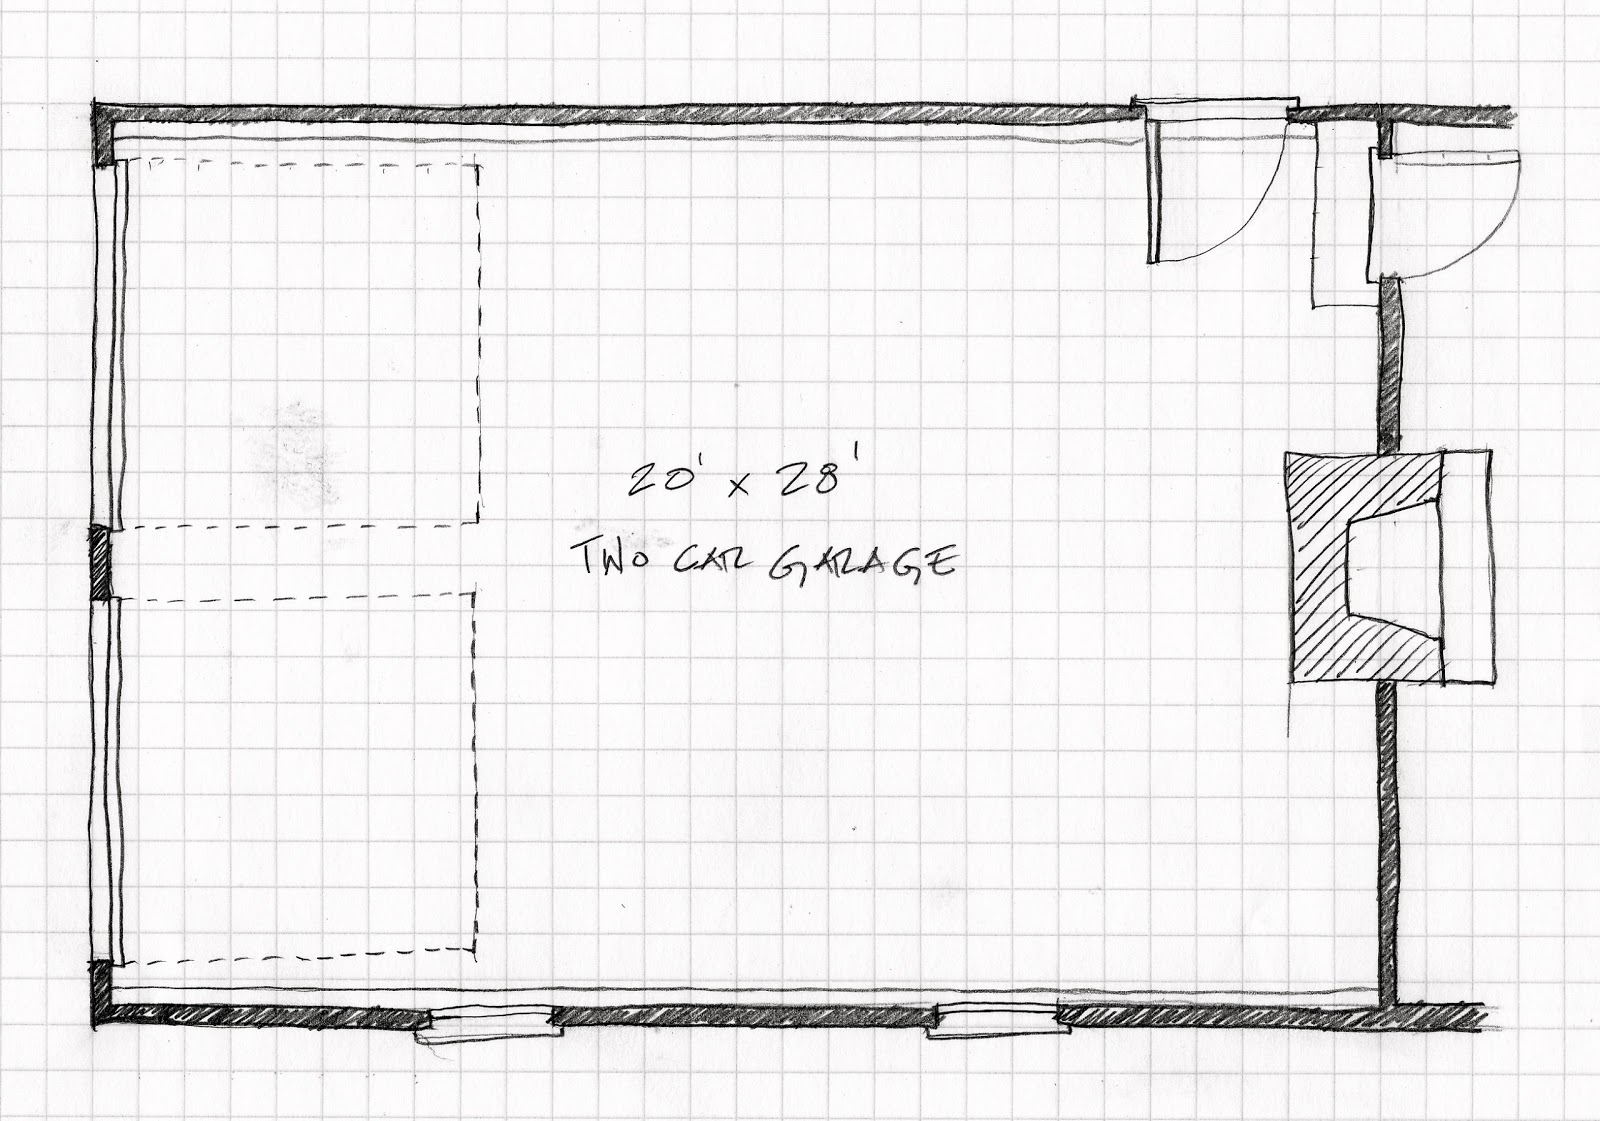 Original 20 X 28 Garage Plan